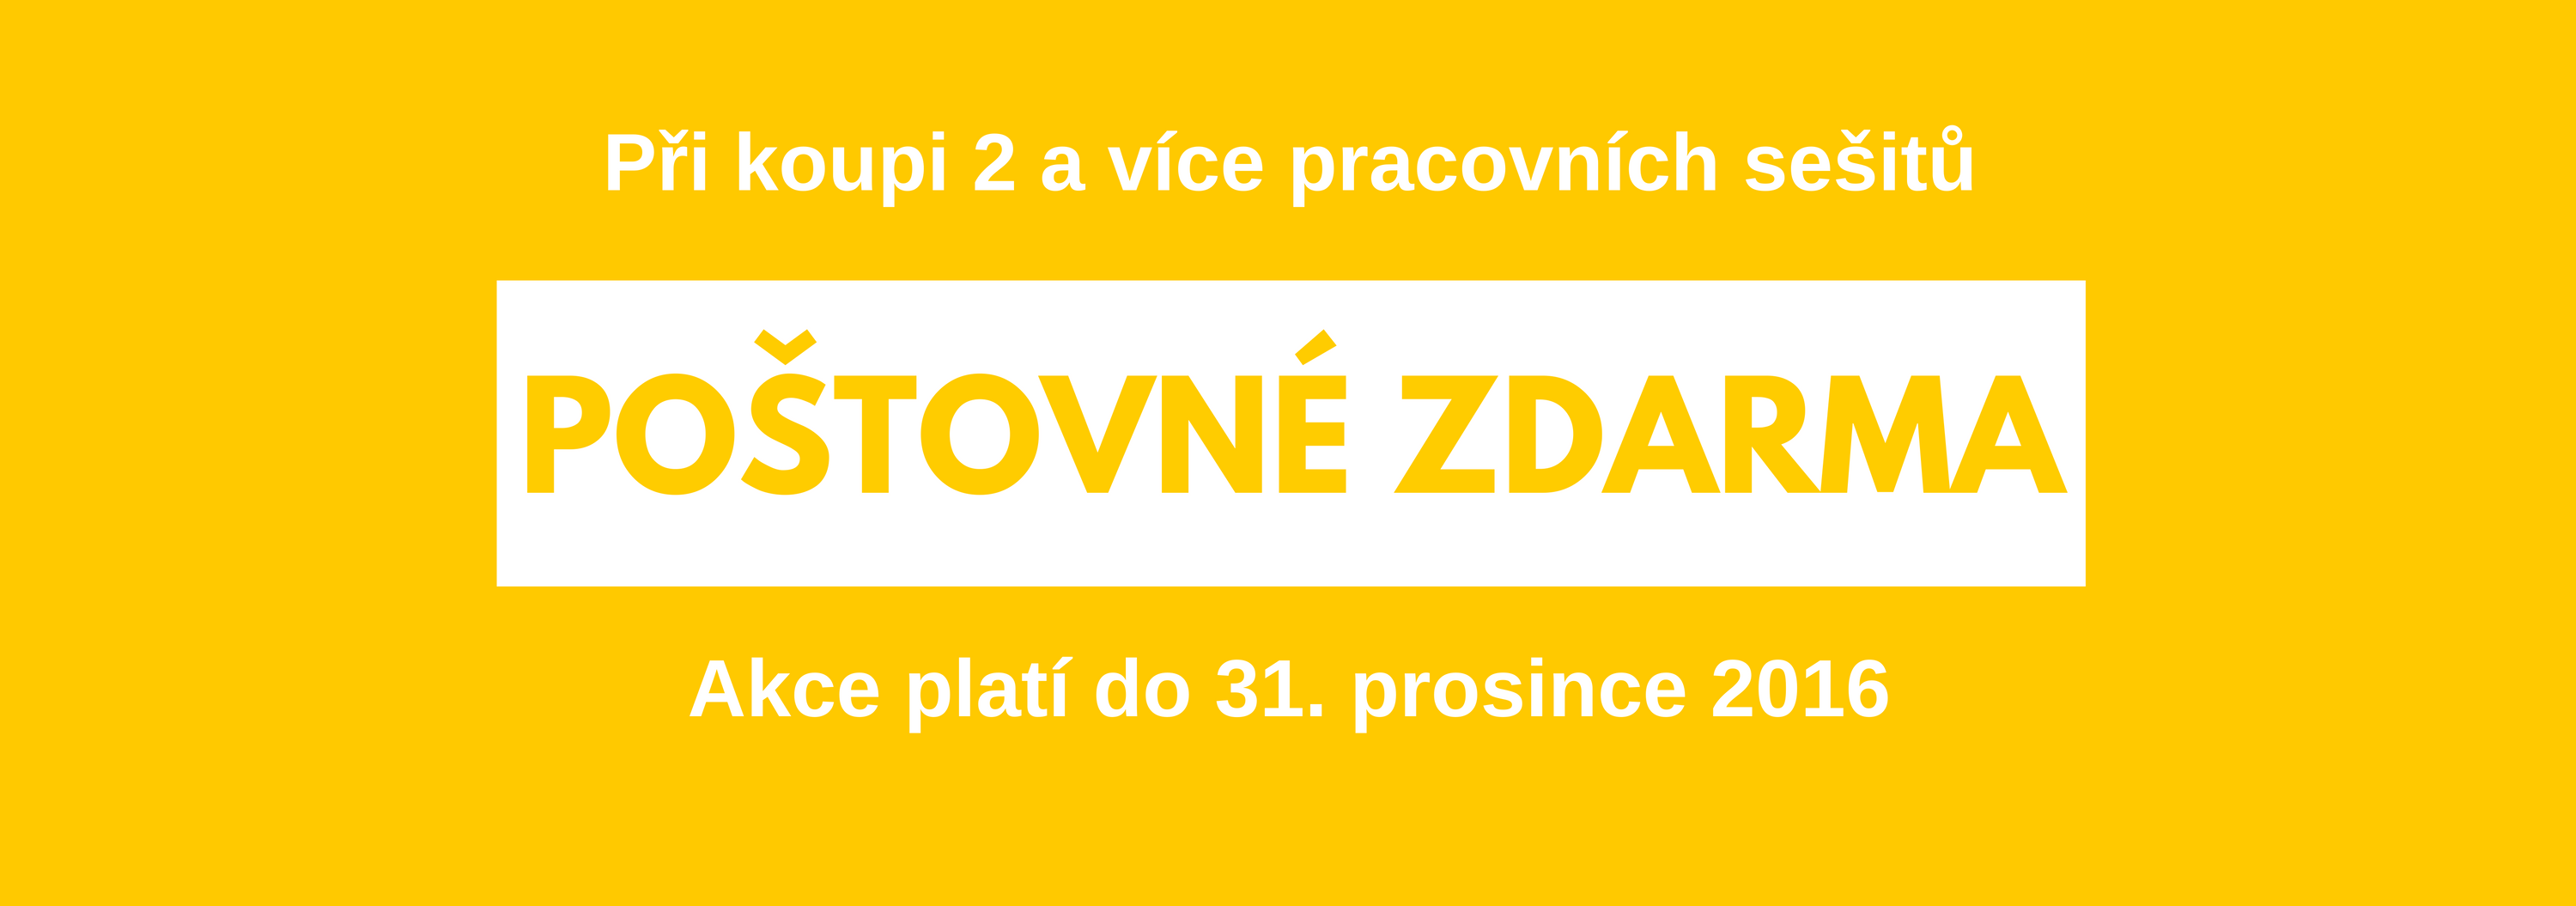 postovne-zdarma_business-success